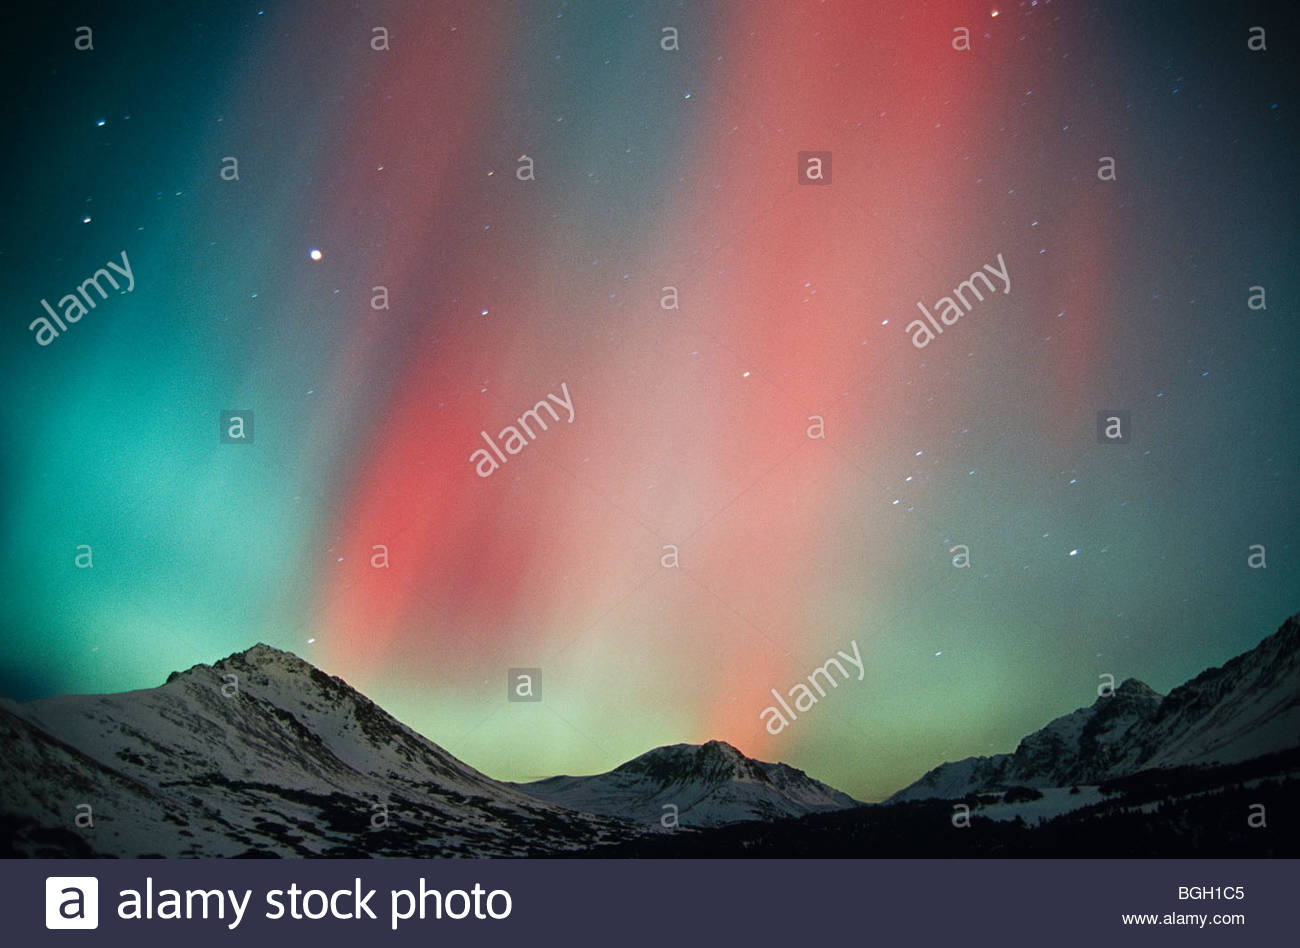 Alaska, Anchorage. Aurora, Chugach Mountains. - Stock Image